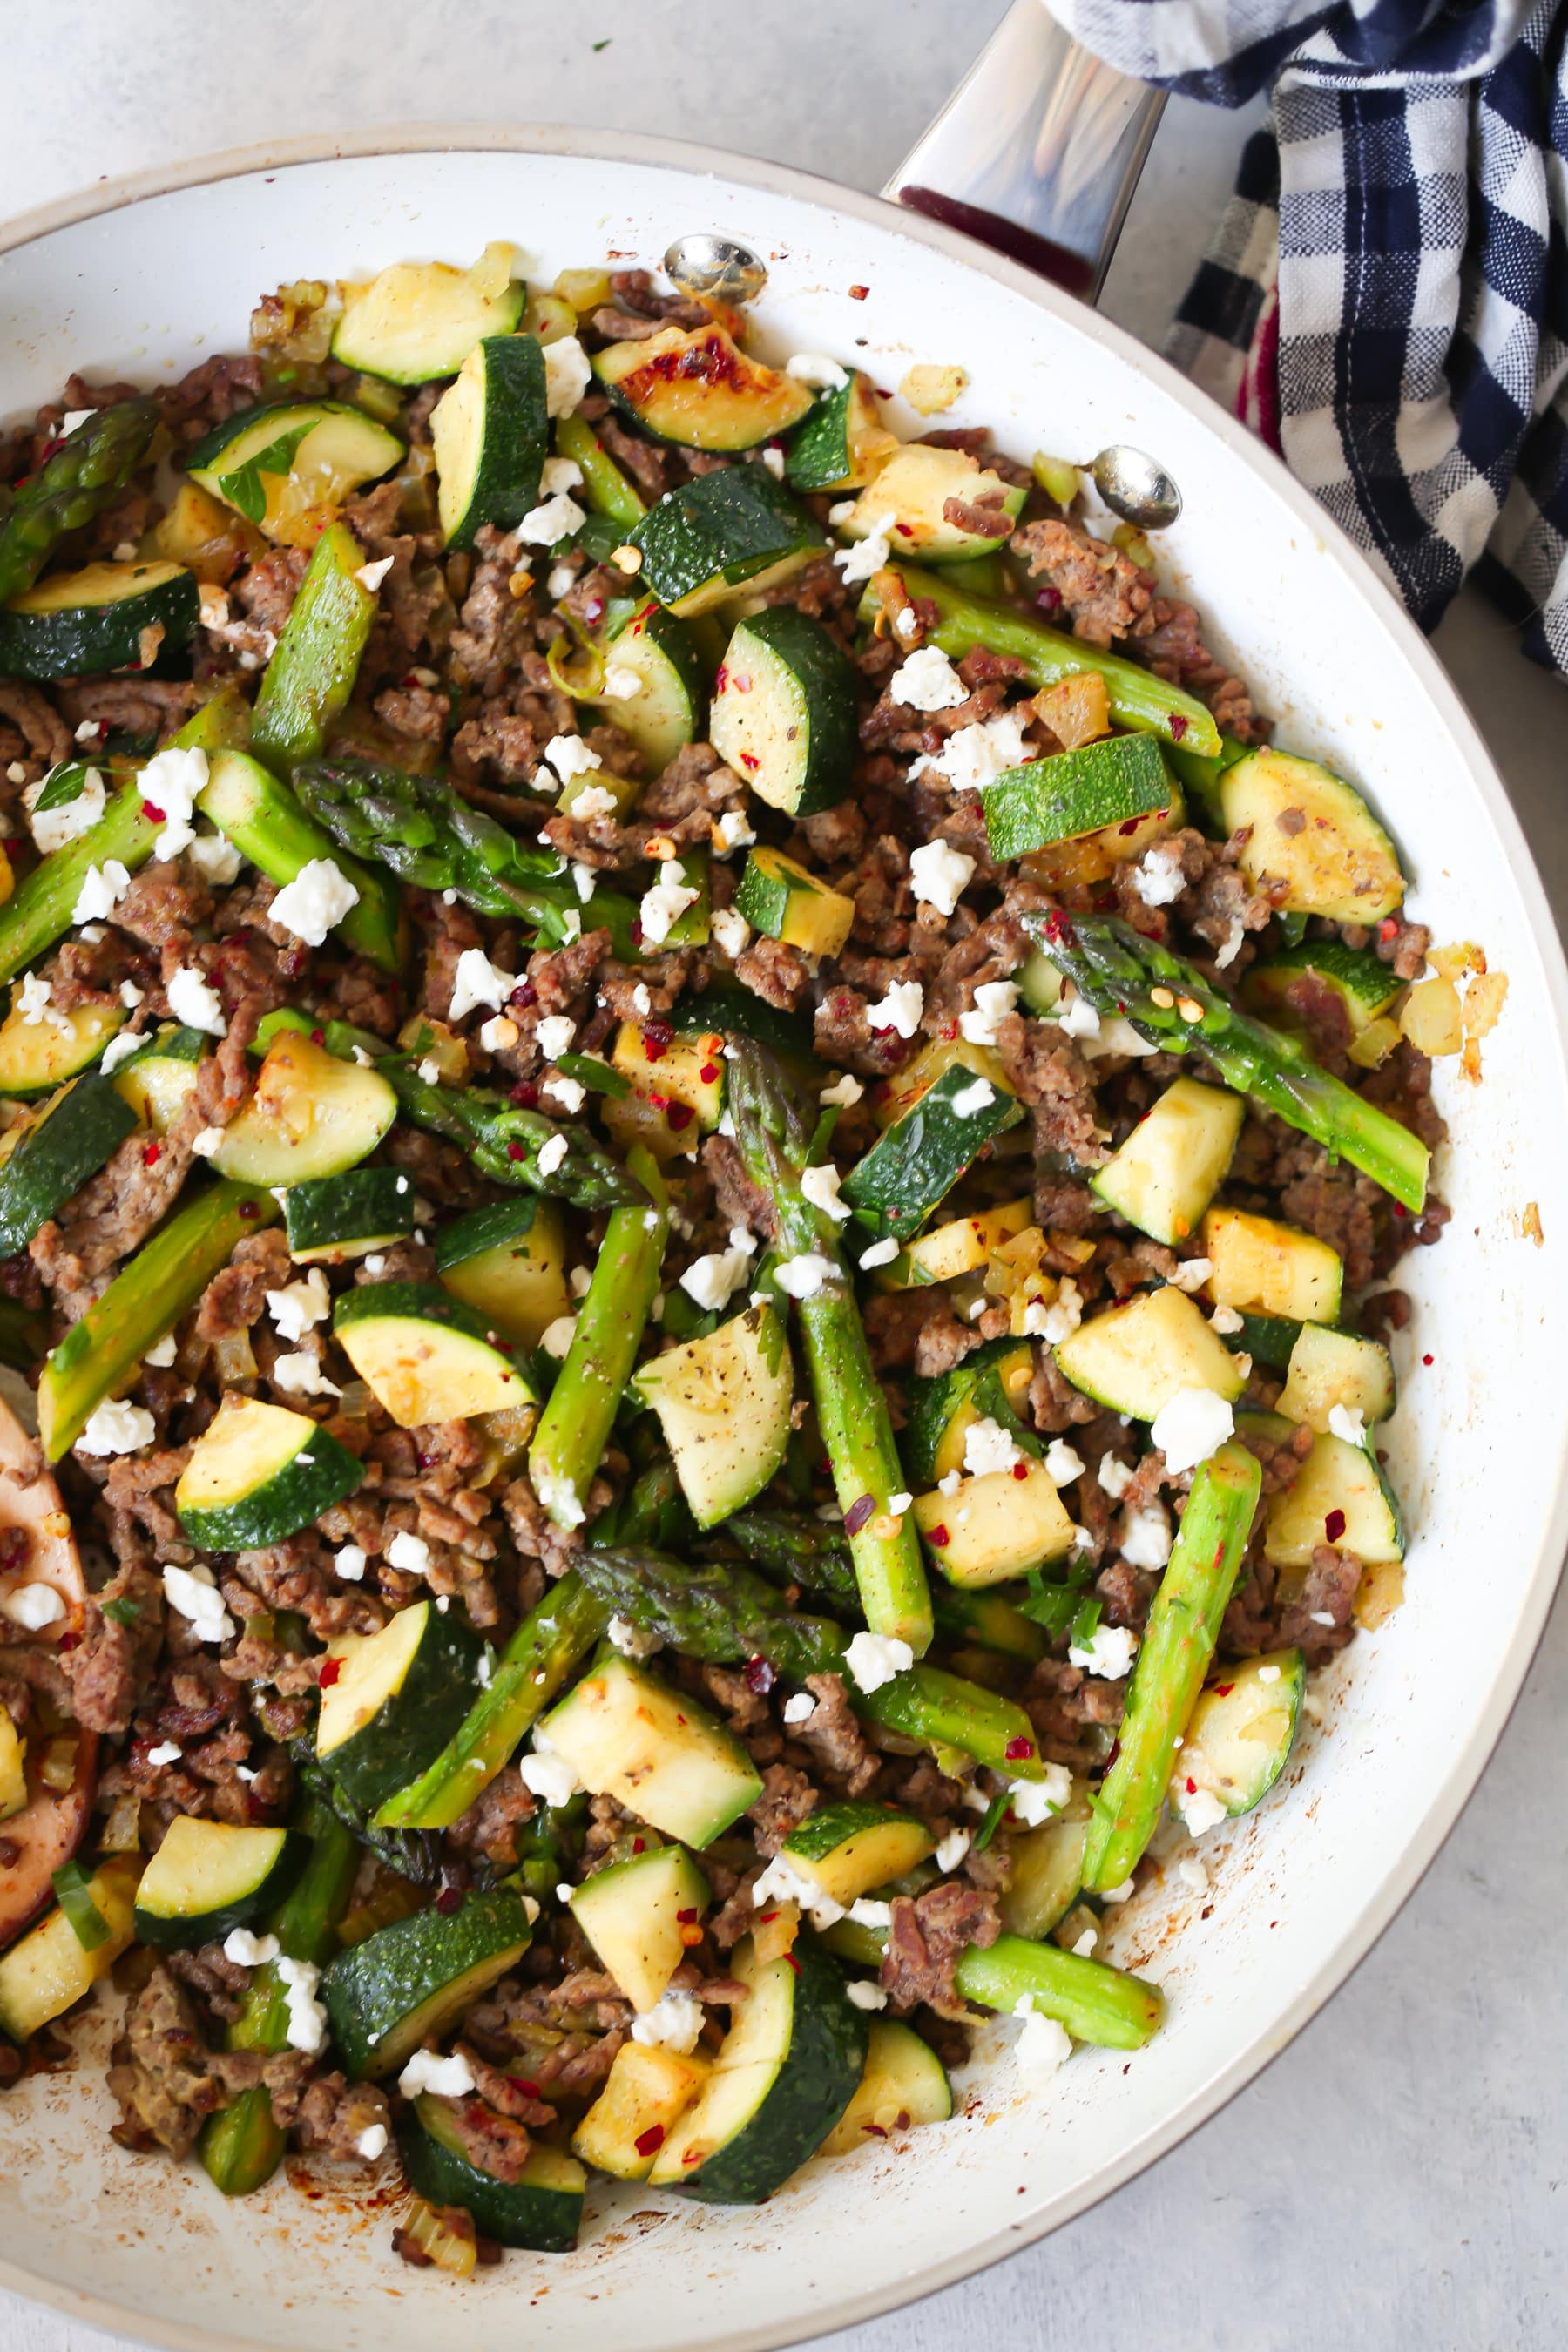 Ground Beef Veggie Skillet - This Ground Beef Veggie Skillet is made with onions, bell pepper, zucchini, asparagus and of course ground beef. And it can be ready from start to finish in 30 mins. It's also low-carb and gluten-free.